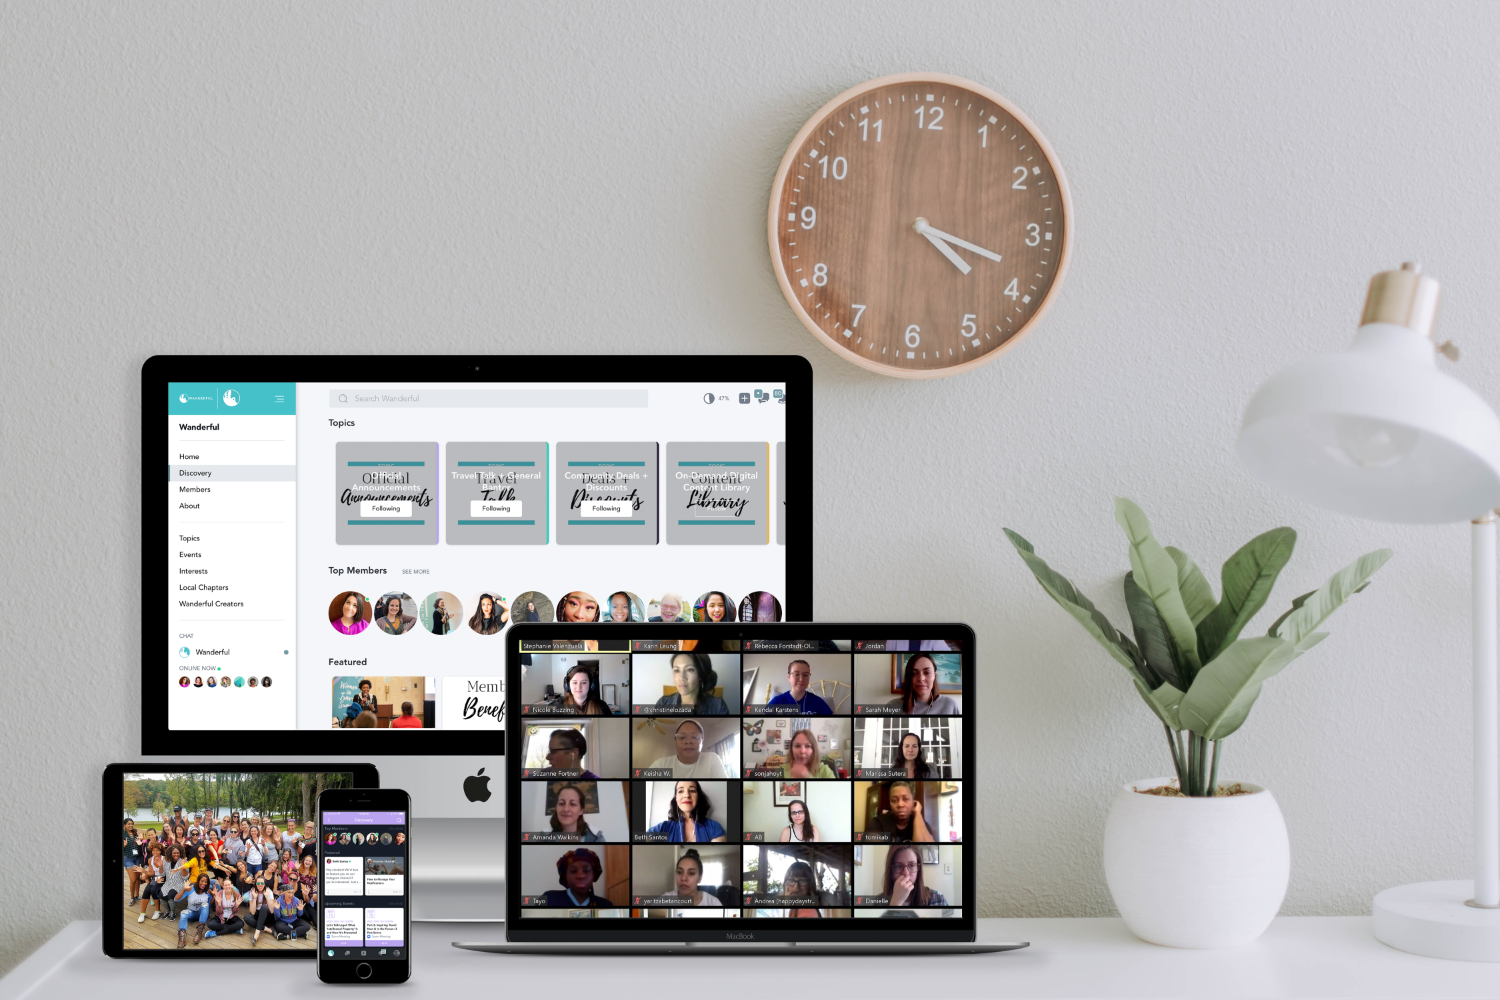 The Wanderful global community connects via virtual events, a members-only app, in-person events, and more. Views of Wanderful across all devices (TV, computer, phone, and tablet)